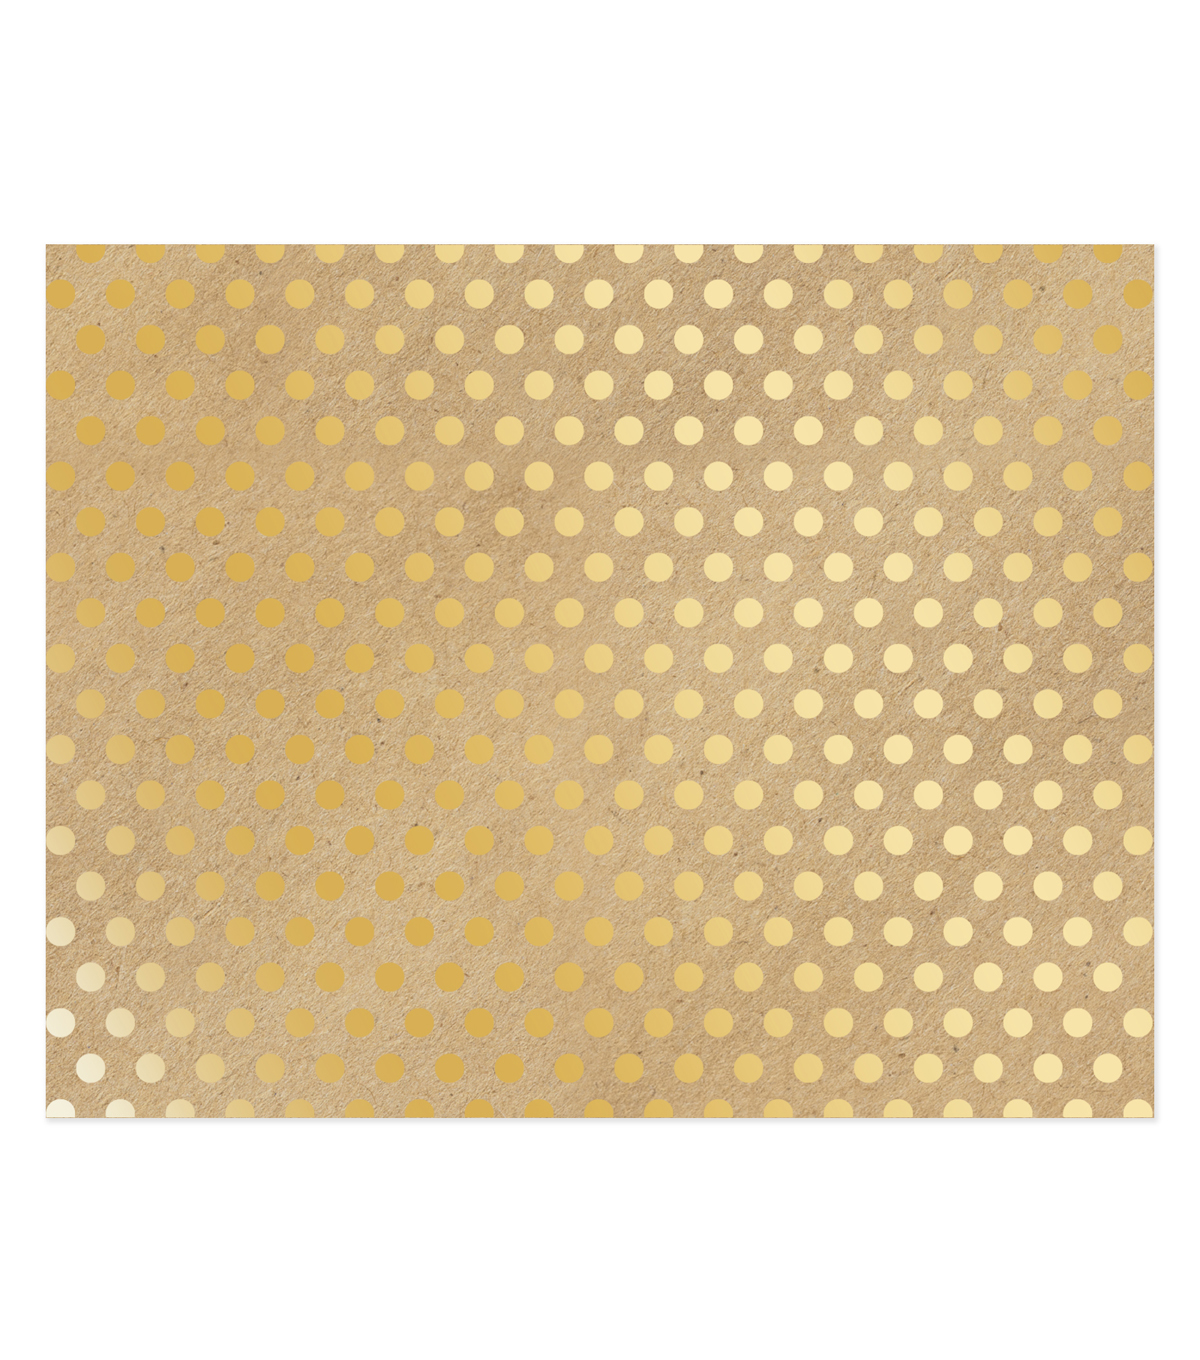 American Crafts 22\u0027\u0027x28\u0027\u0027 Poster Board-Gold Dots on Kraft